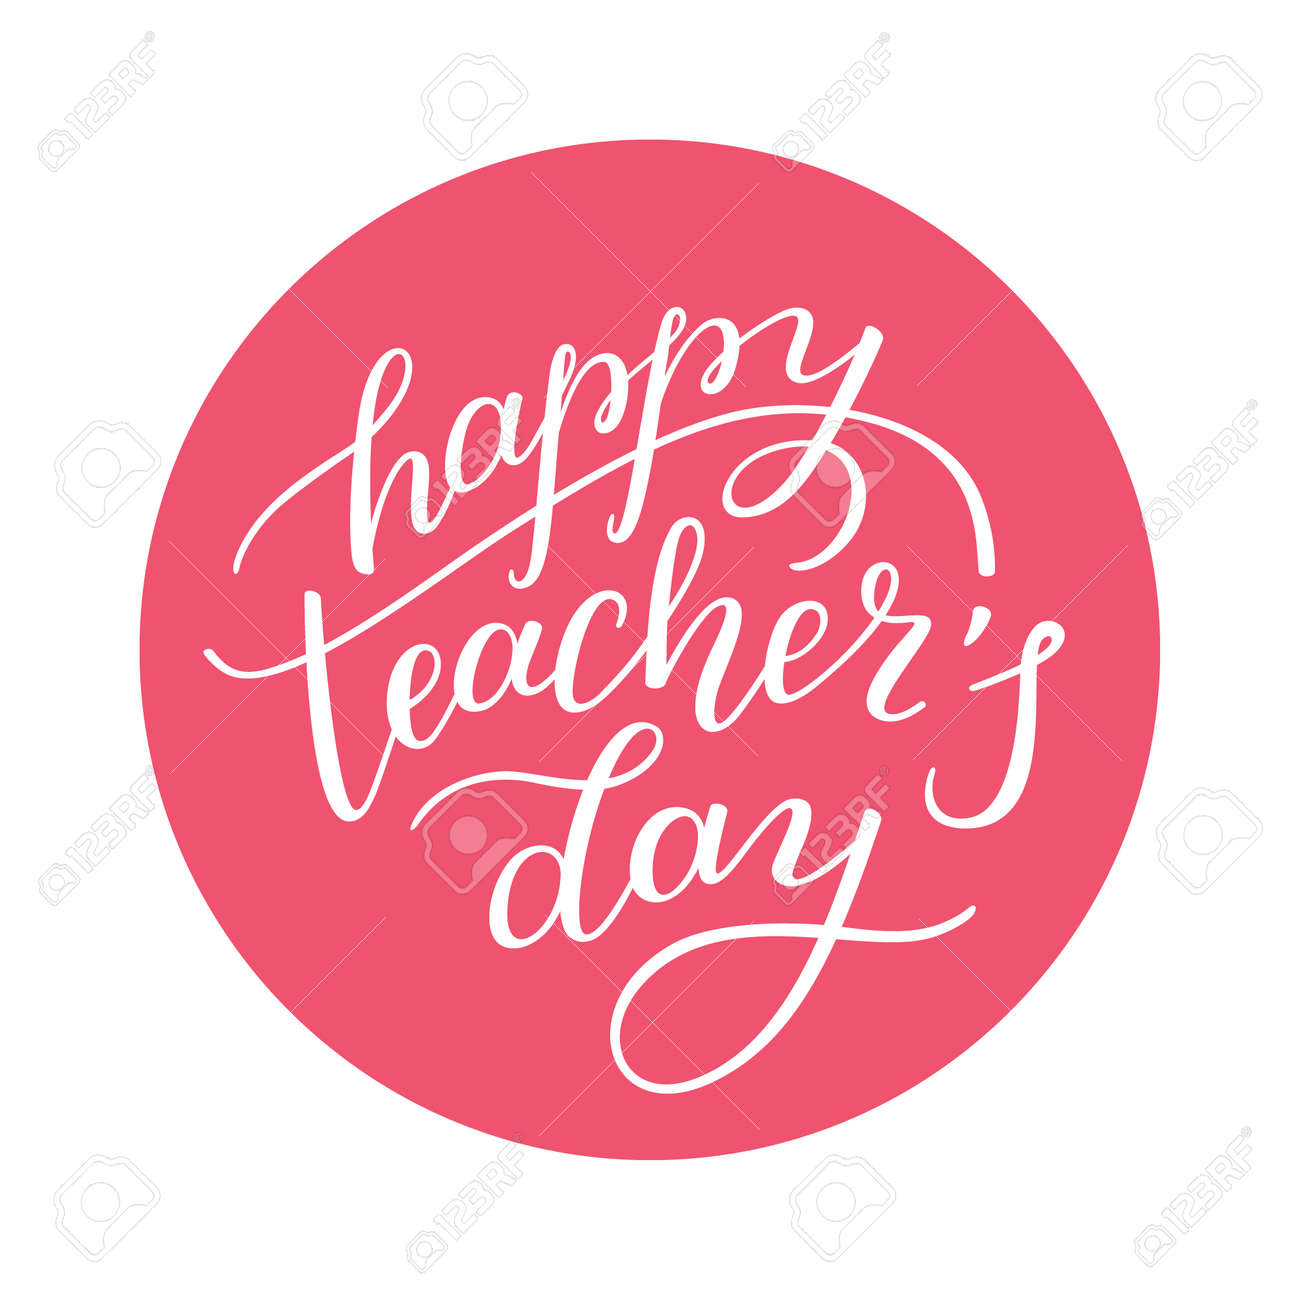 Happy Teachers Day Hand Lettering Template For Greeting Cards